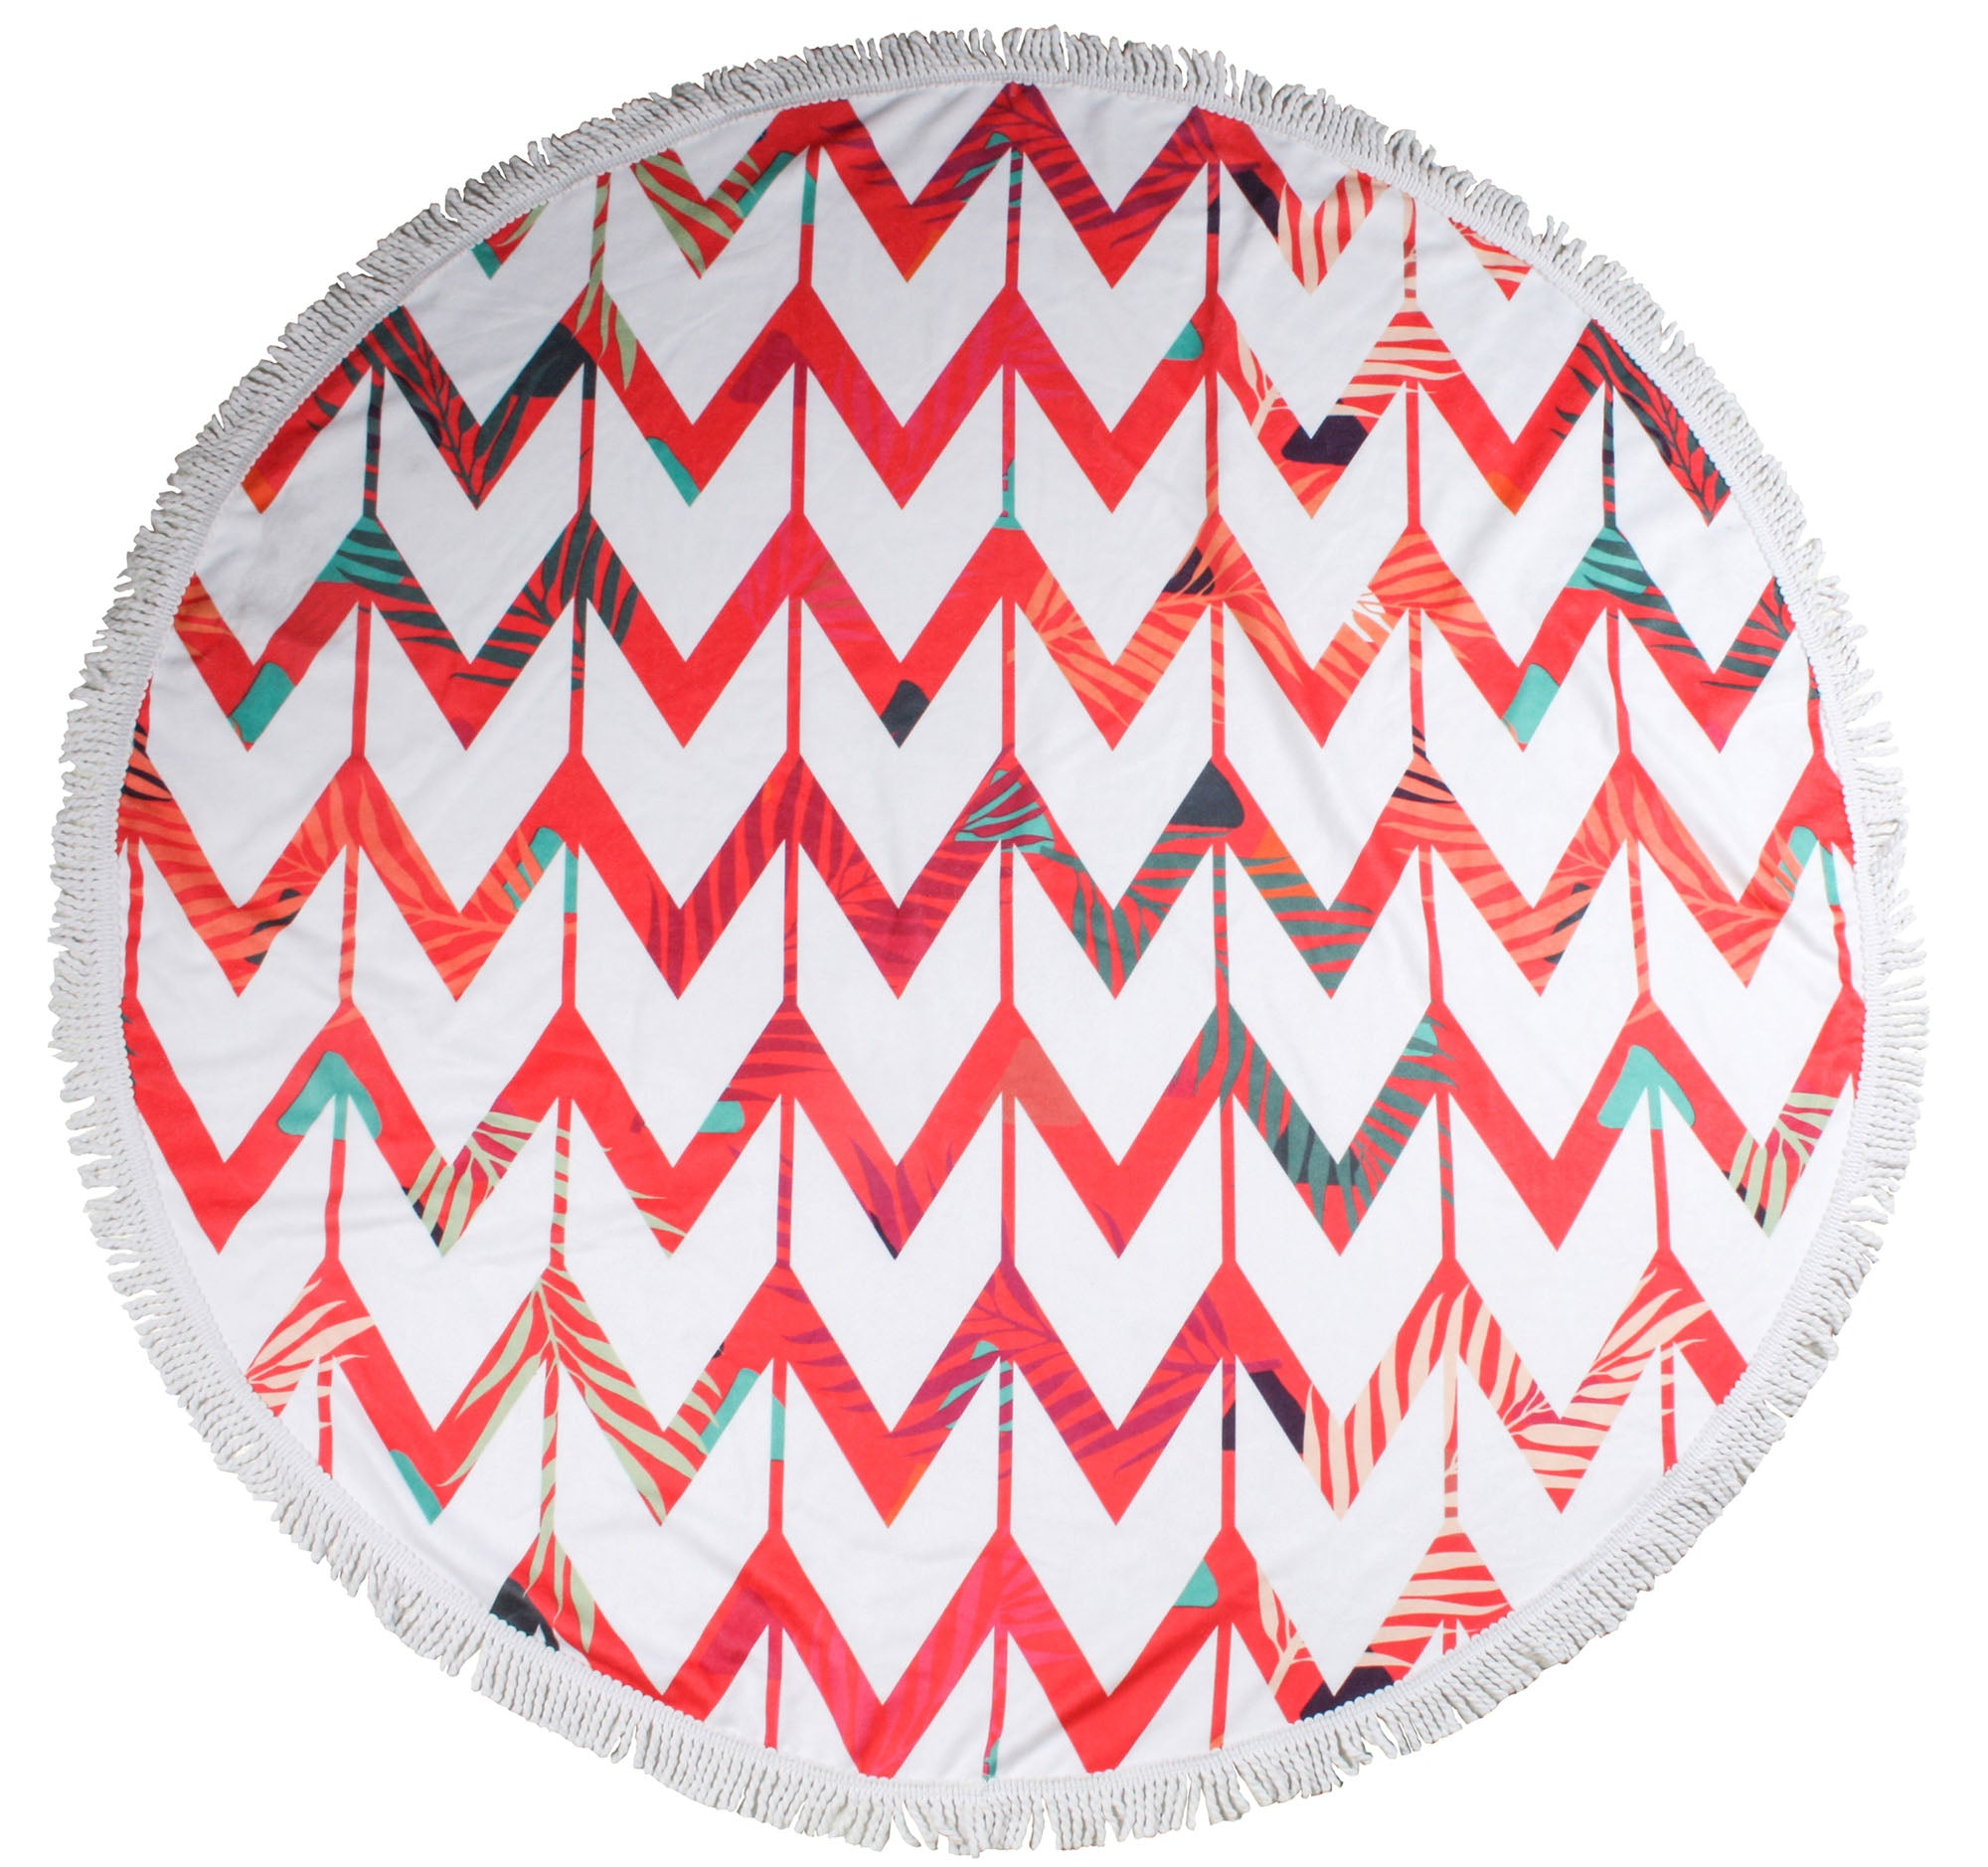 Zig Zag Round Towels - Chachi's Bay - kids rashies - kids swimwear - kids swim shoes - round towels - beach towels